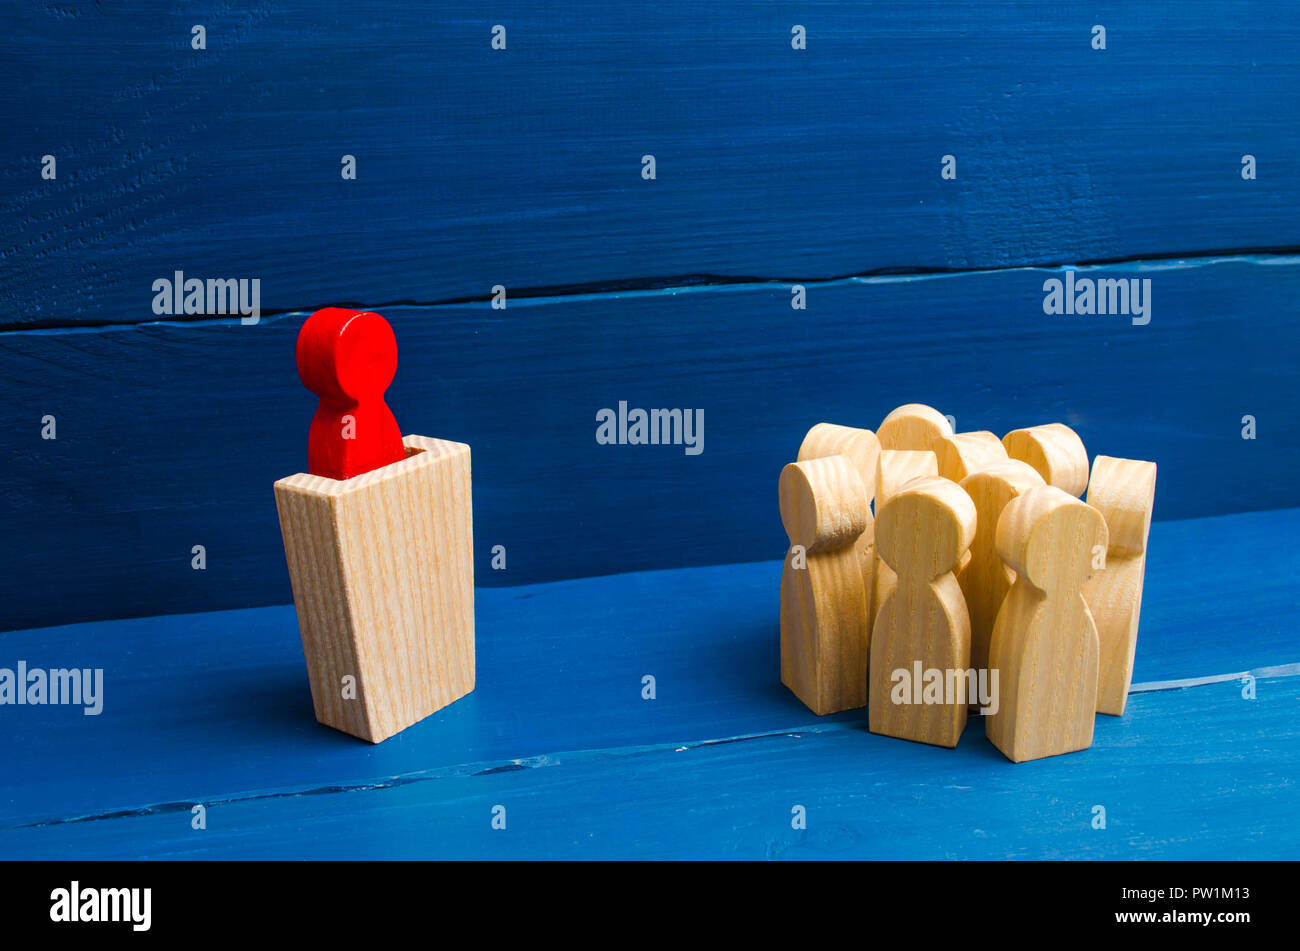 Business concept of leader and leadership qualities, crowd management, political debate and elections. Business management. The leader from the rostru - Stock Image